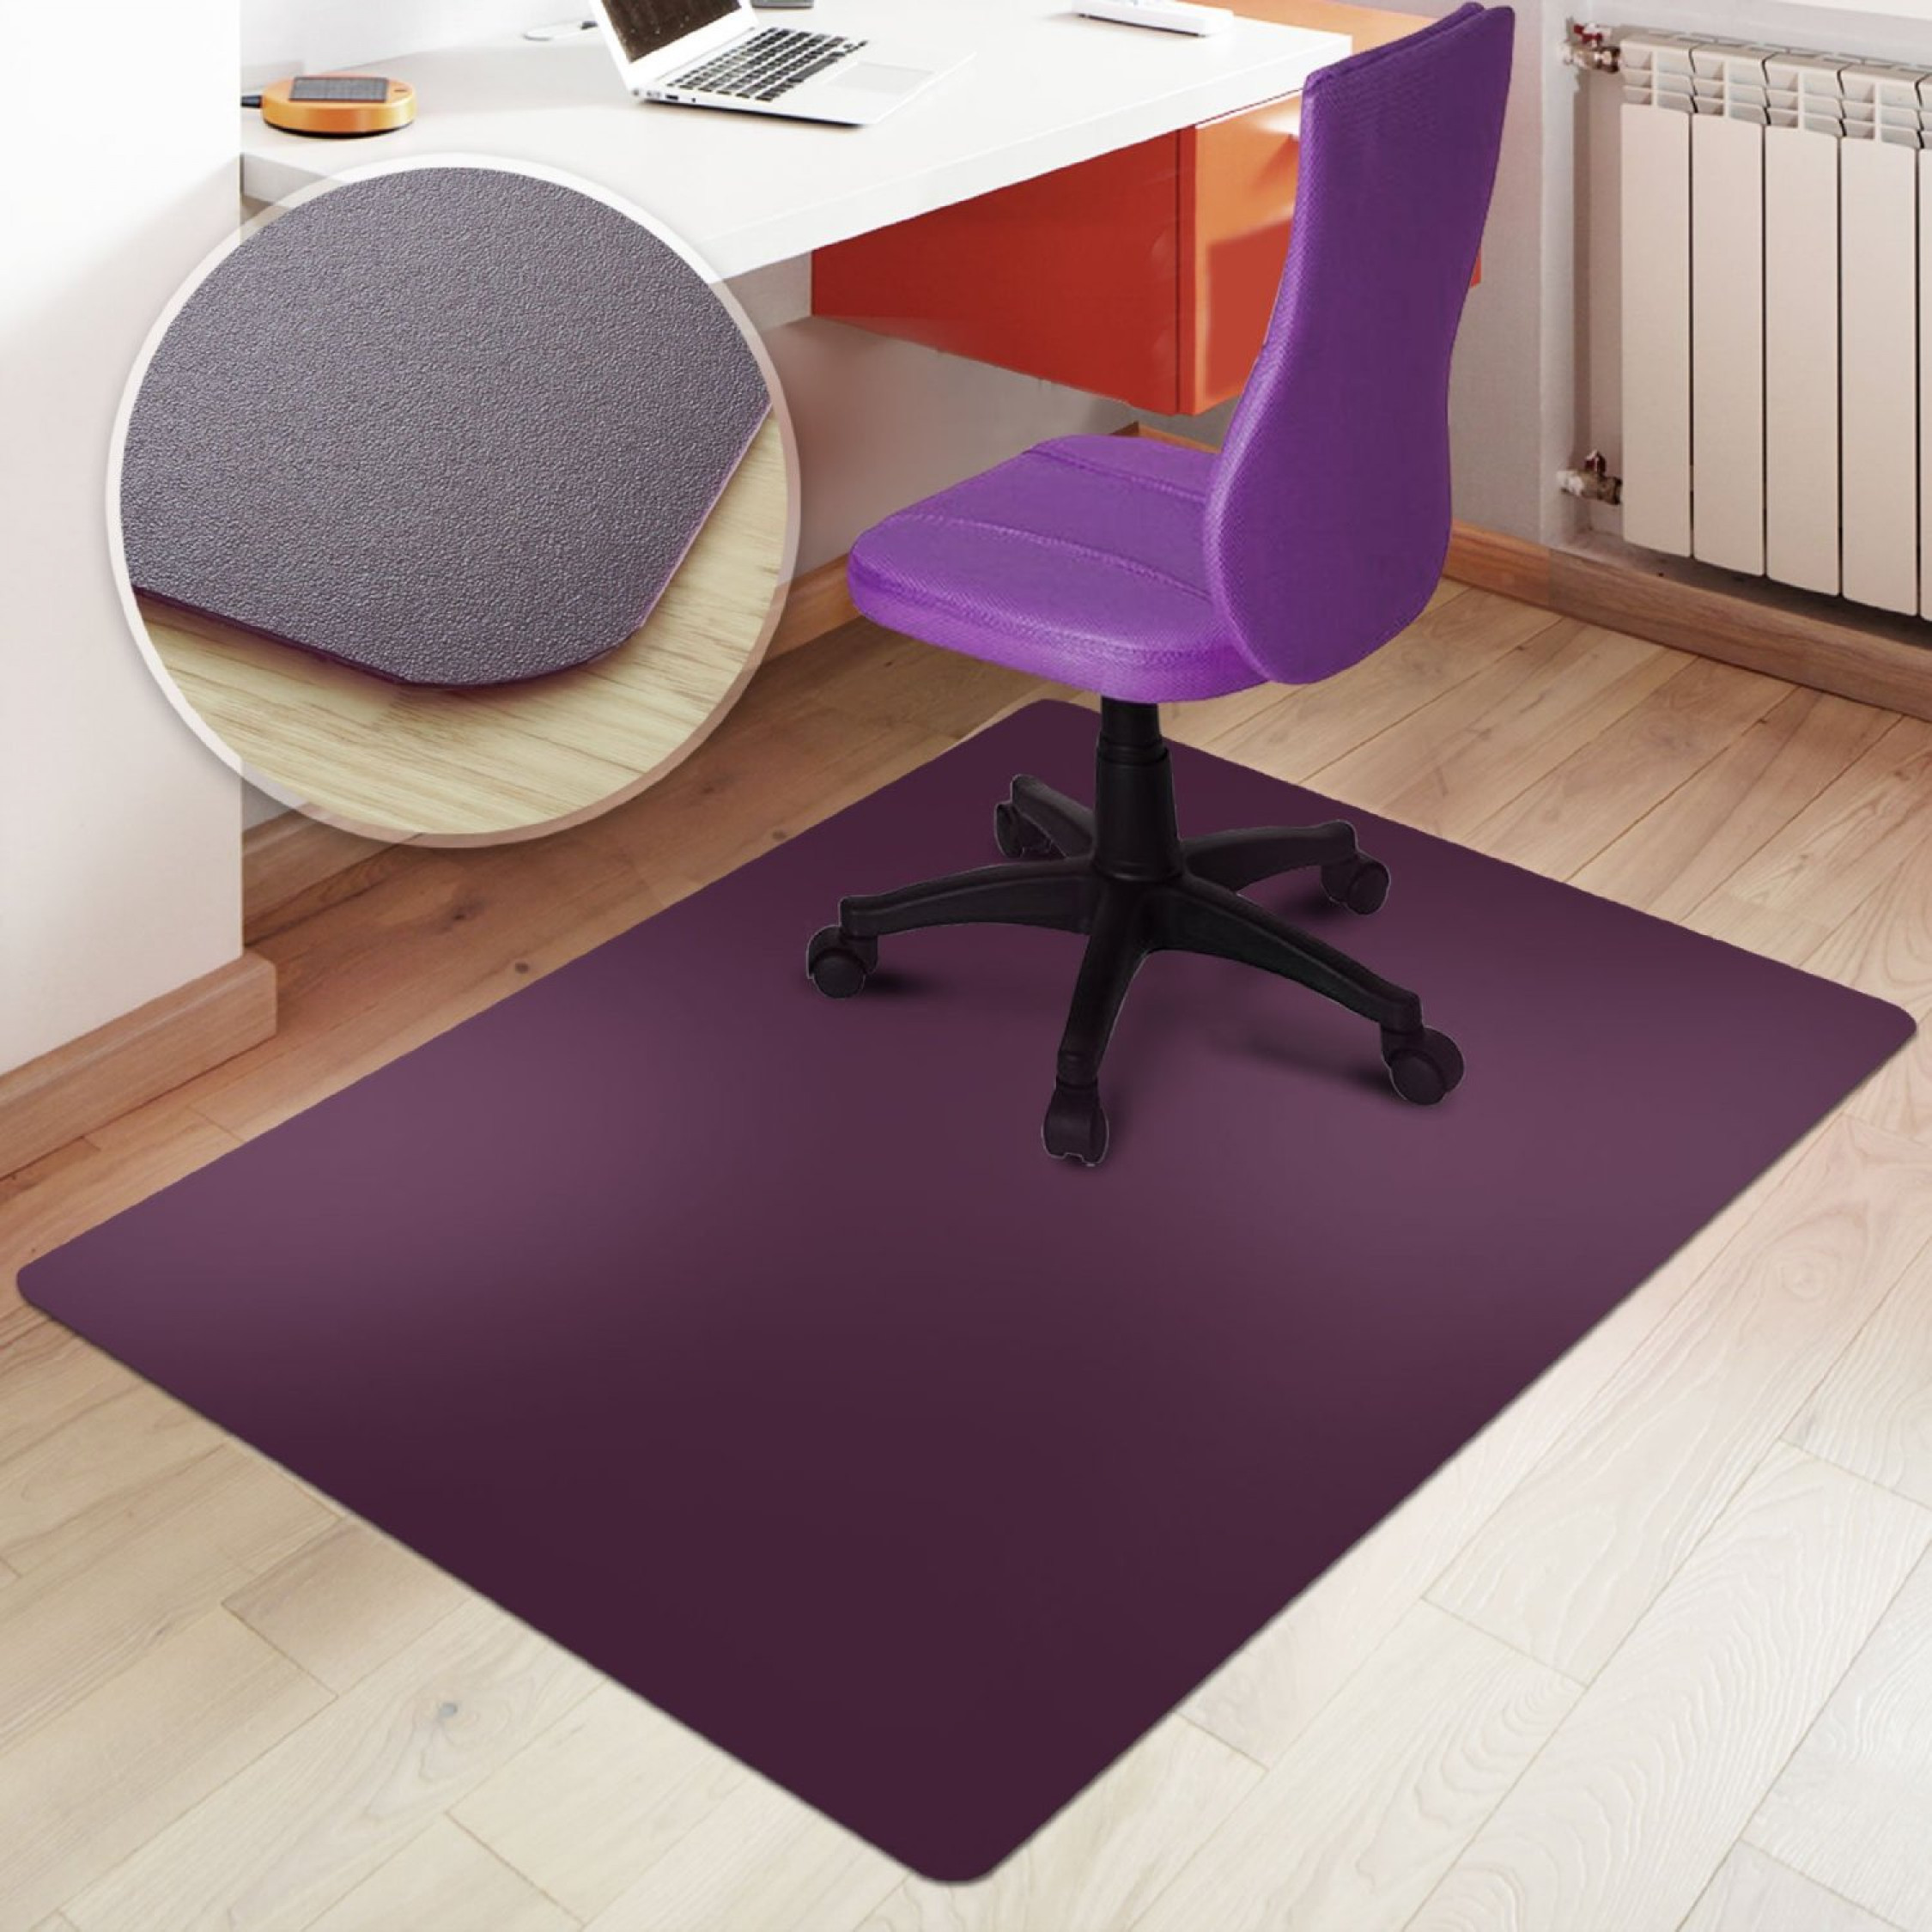 Best ideas about Office Chair Floor Mat . Save or Pin Rectangular fice Chair Mat Purple Hard Floor Protection Now.